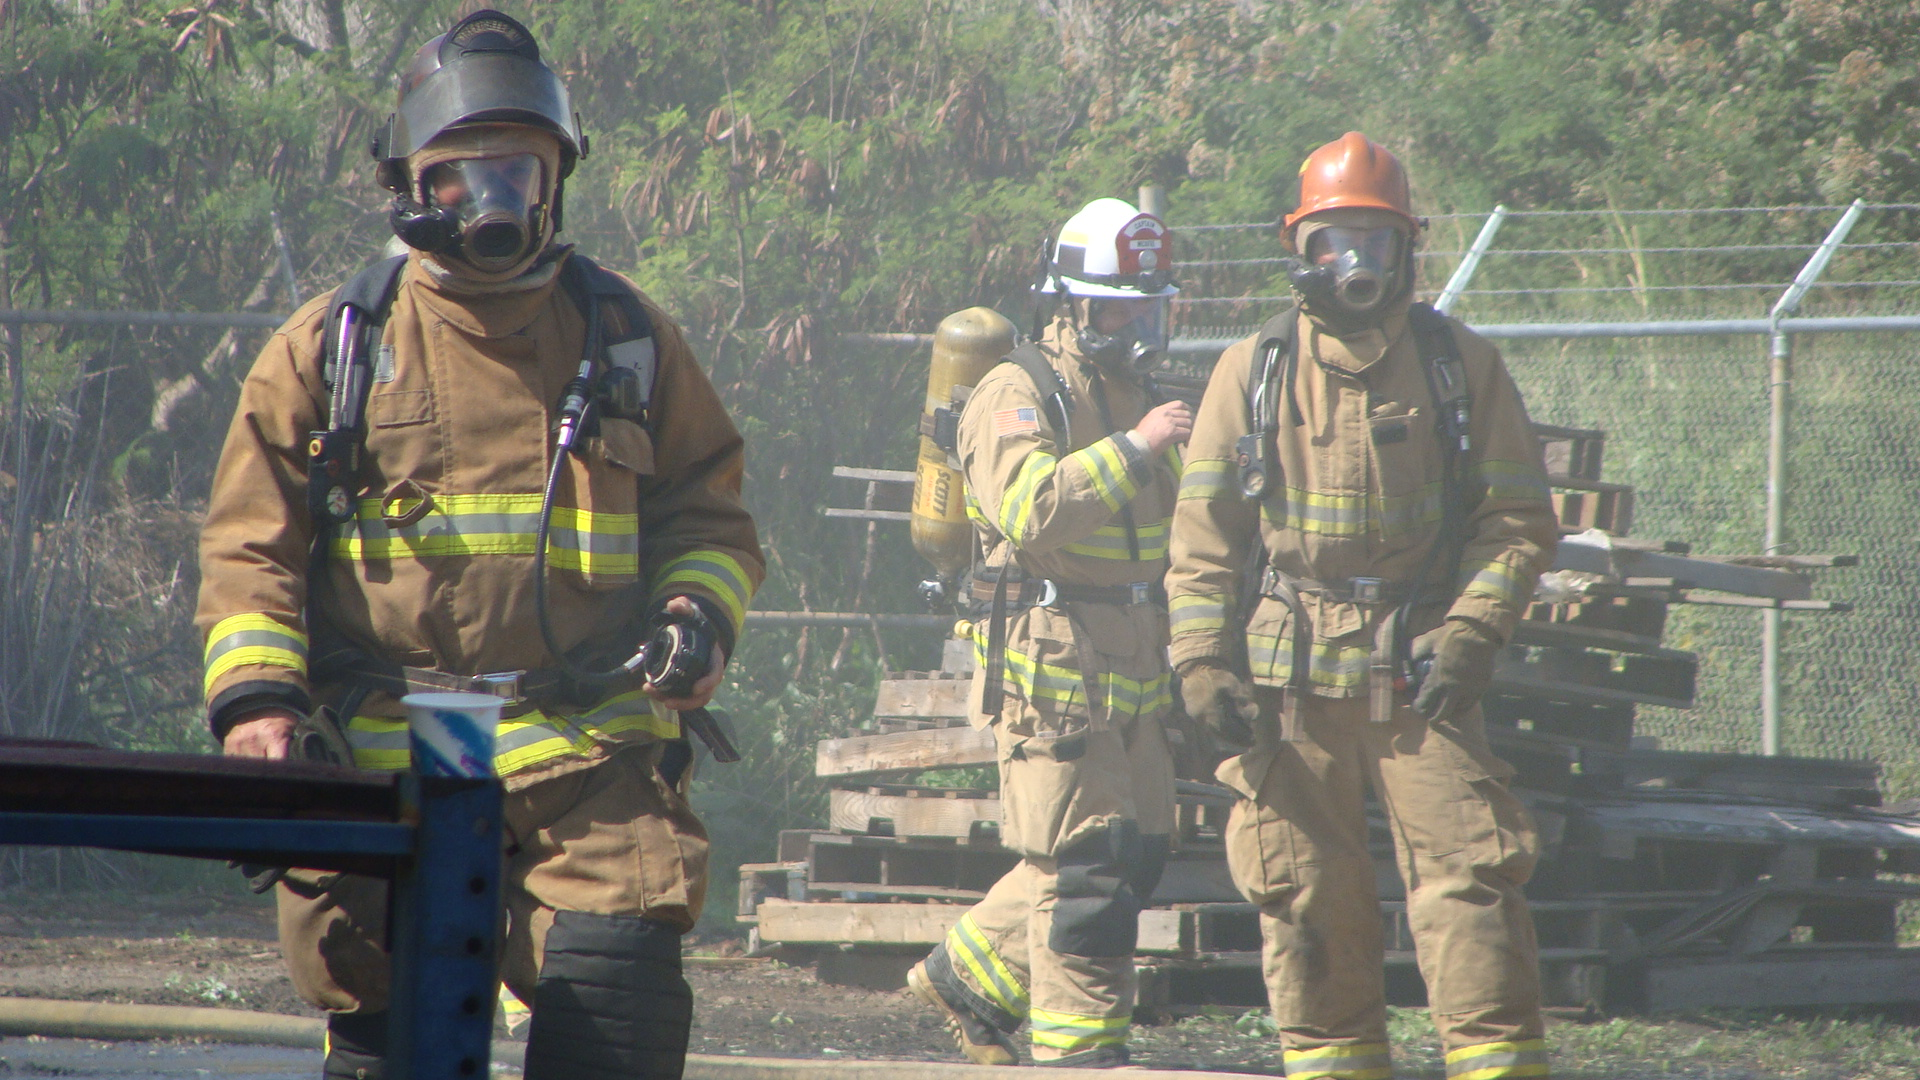 Maui Firefighters to Conduct Live Fire Training, Nov. 4-5